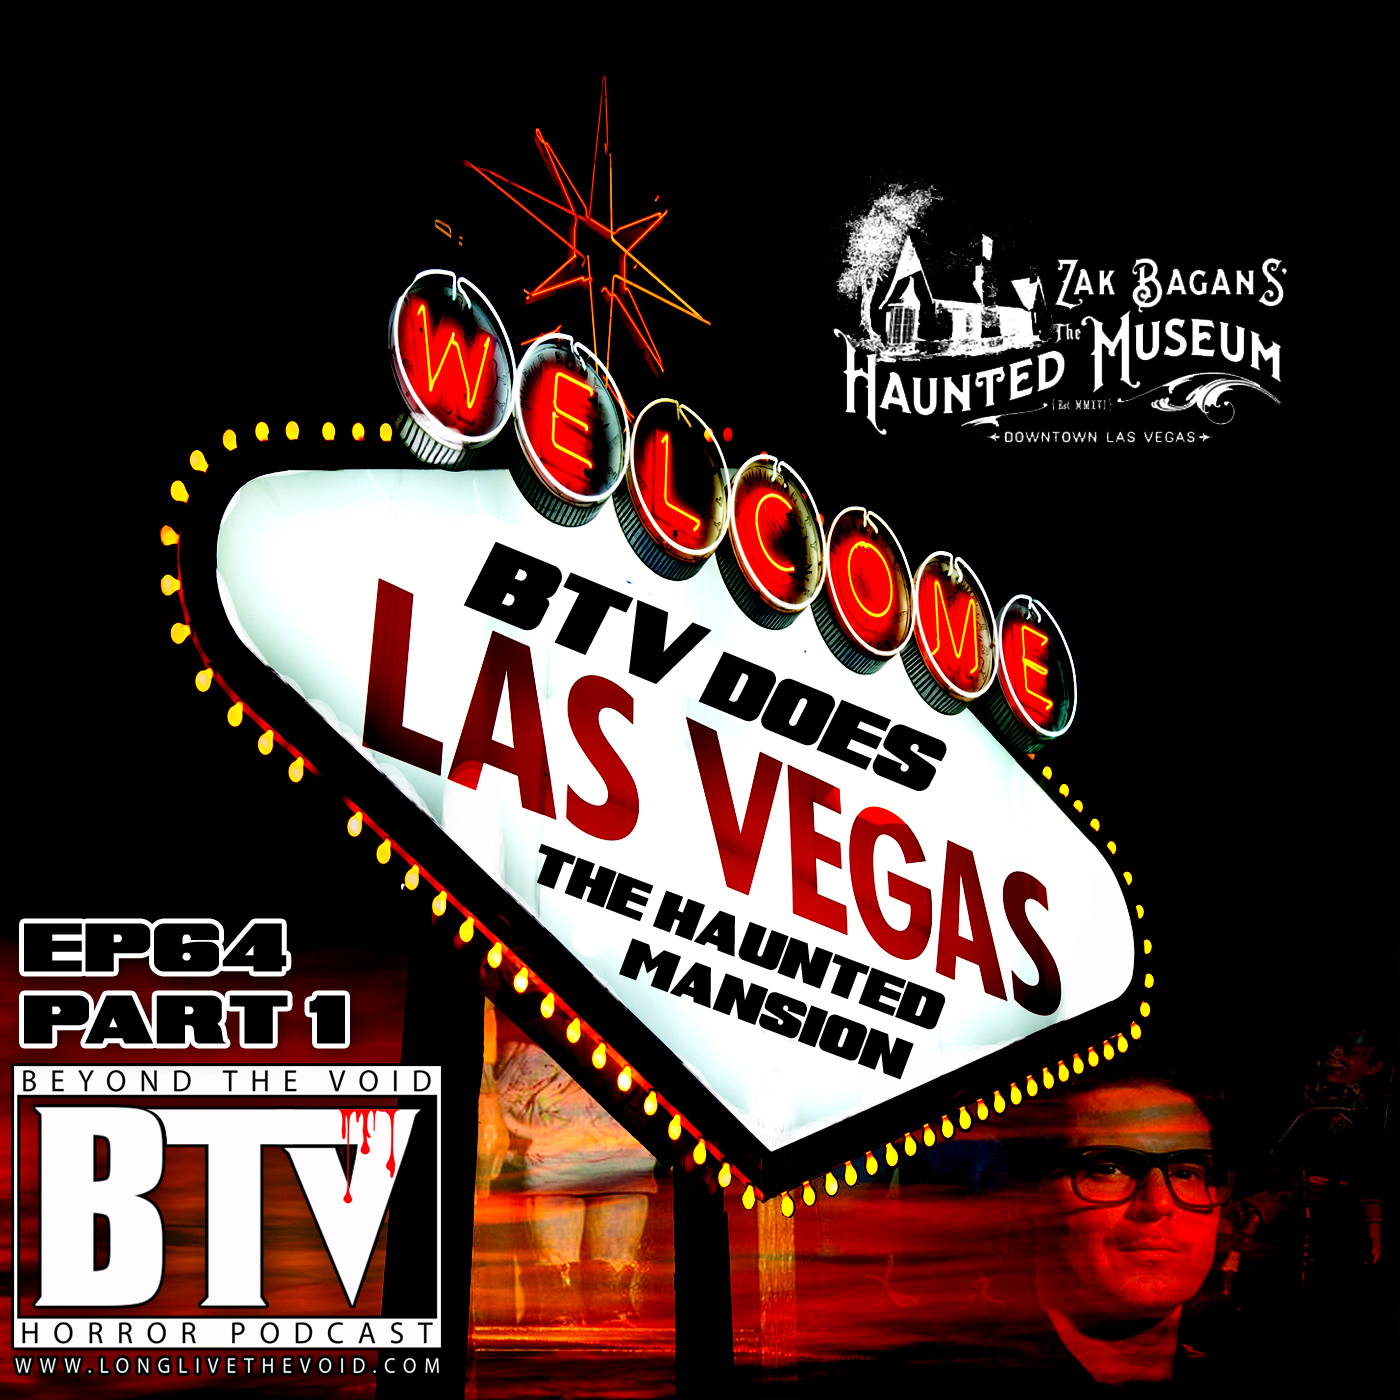 Ep64 (Part 1) BTV Does Vegas [The Haunted Museum Review] — BEYOND